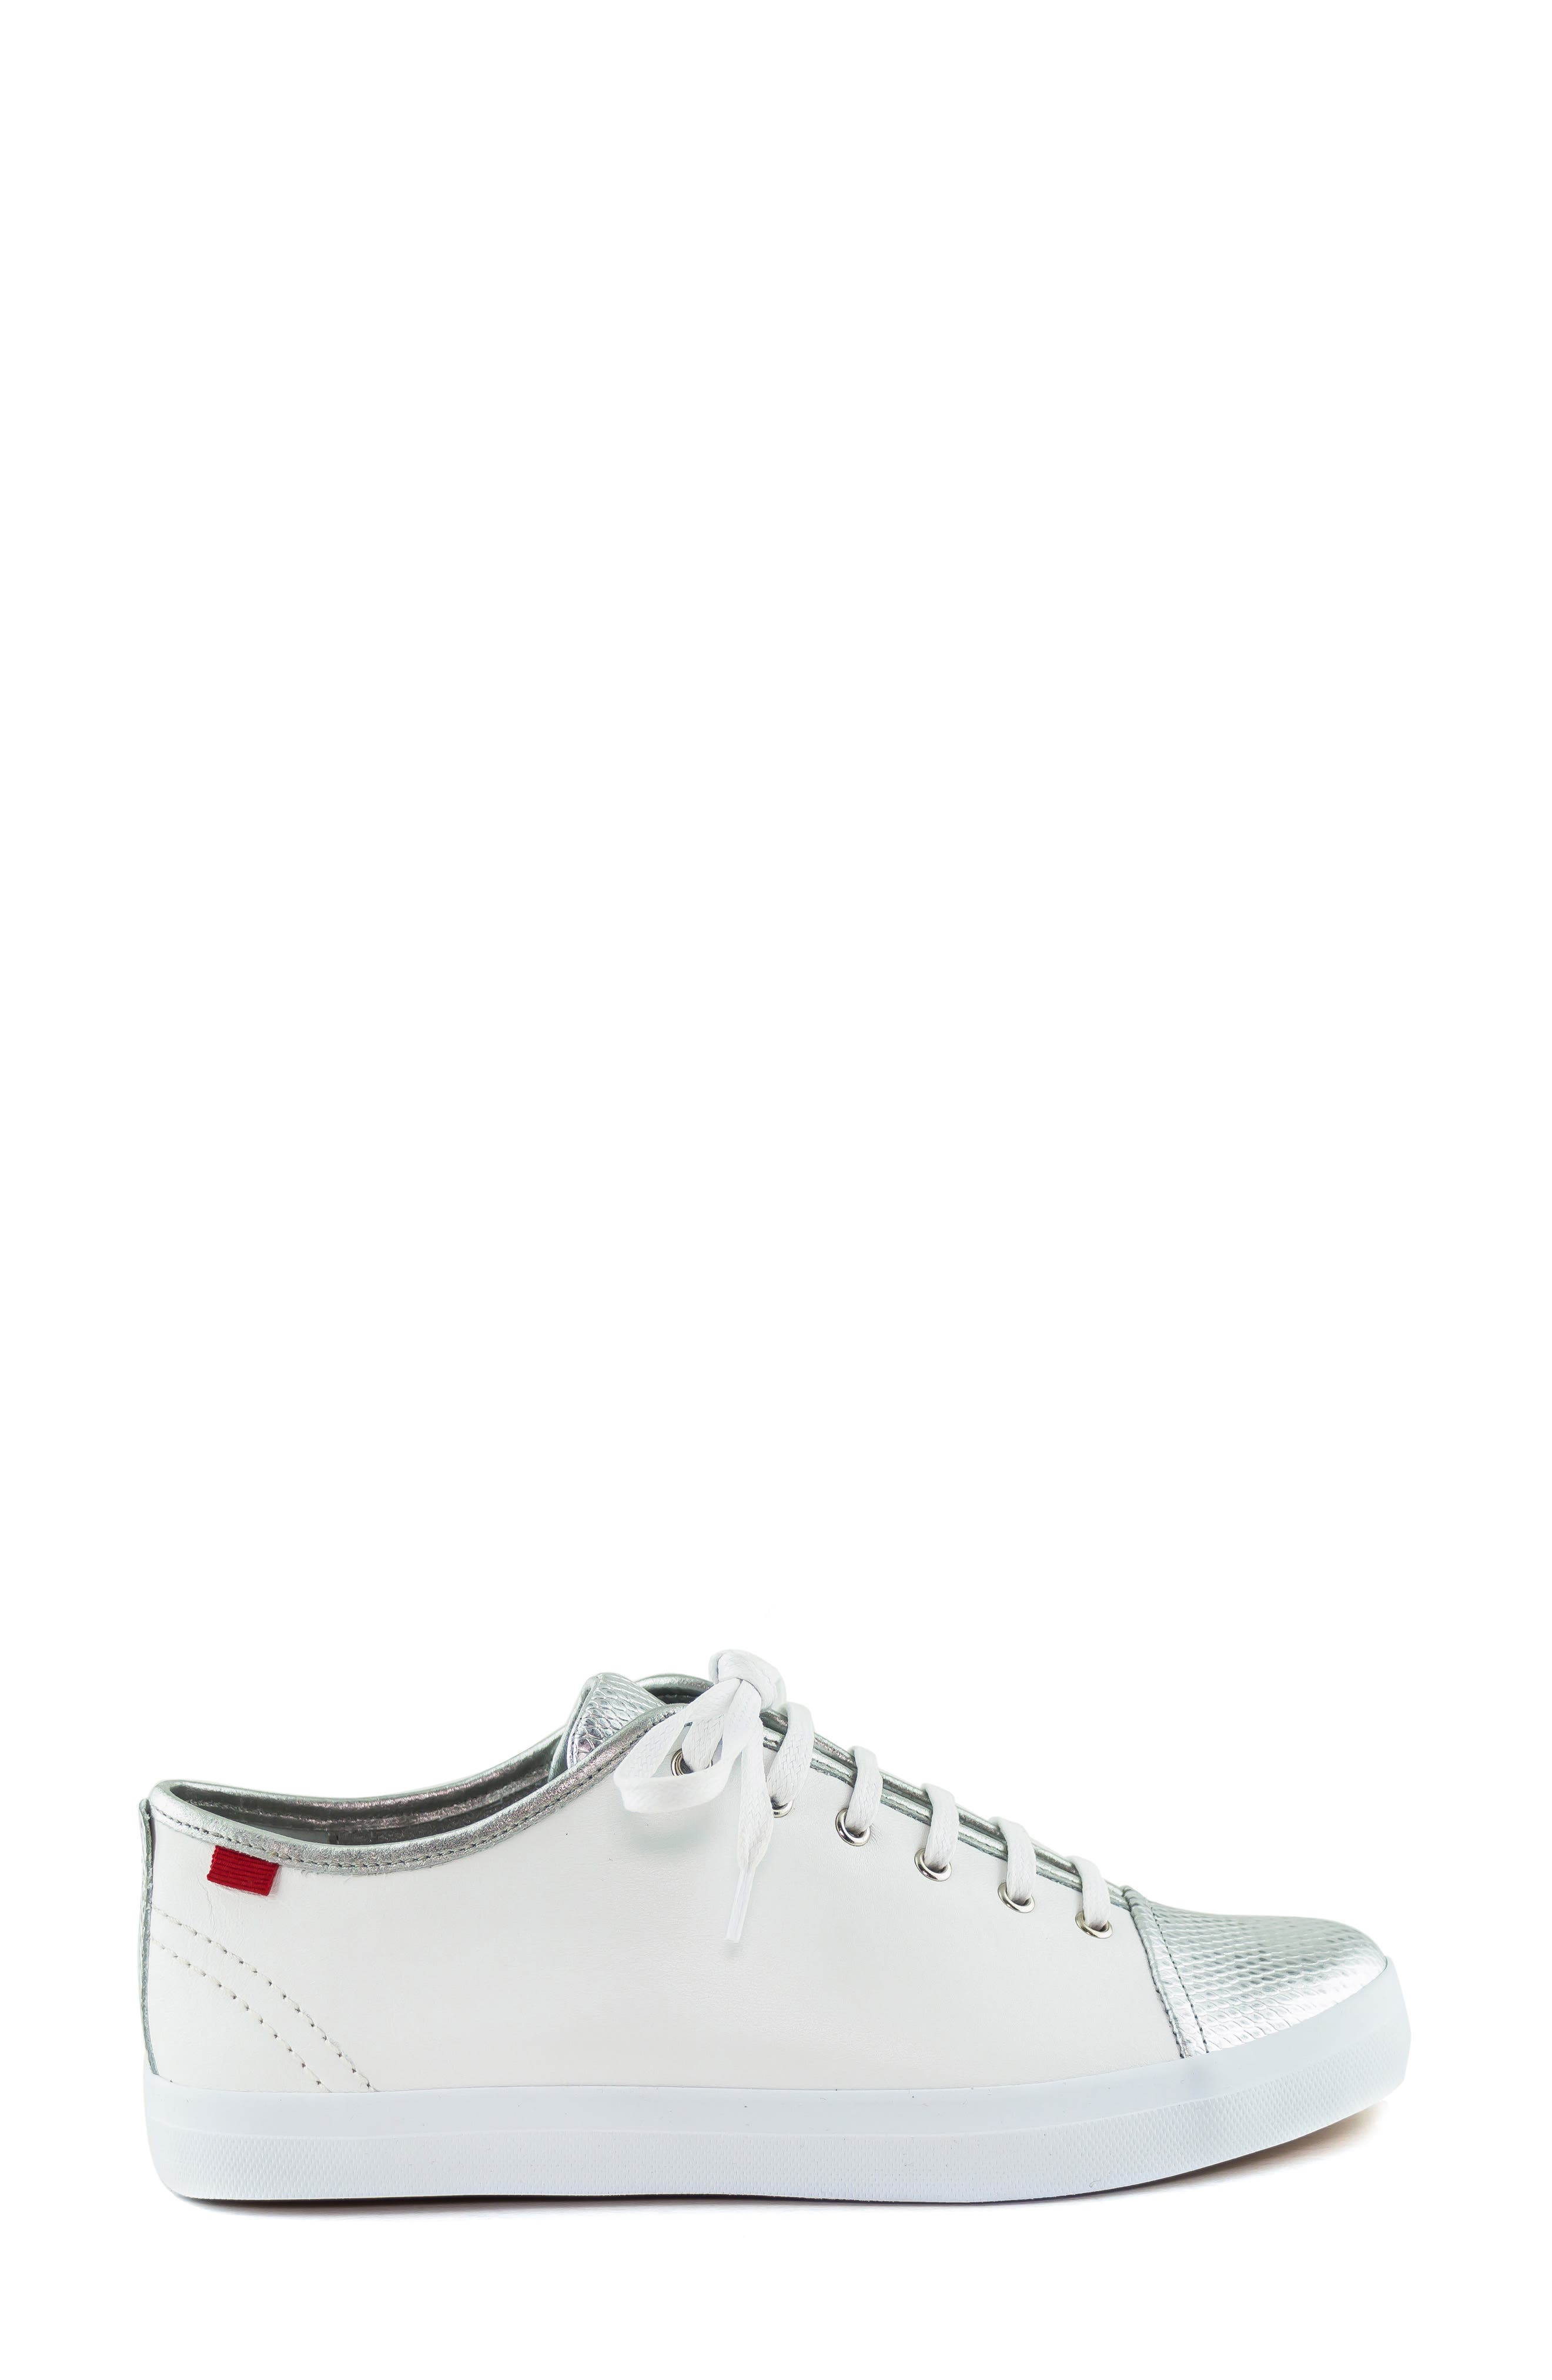 MARC JOSEPH NEW YORK, Bleecker Street Sneaker, Alternate thumbnail 3, color, WHITE/ GIPSY SILVER LEATHER